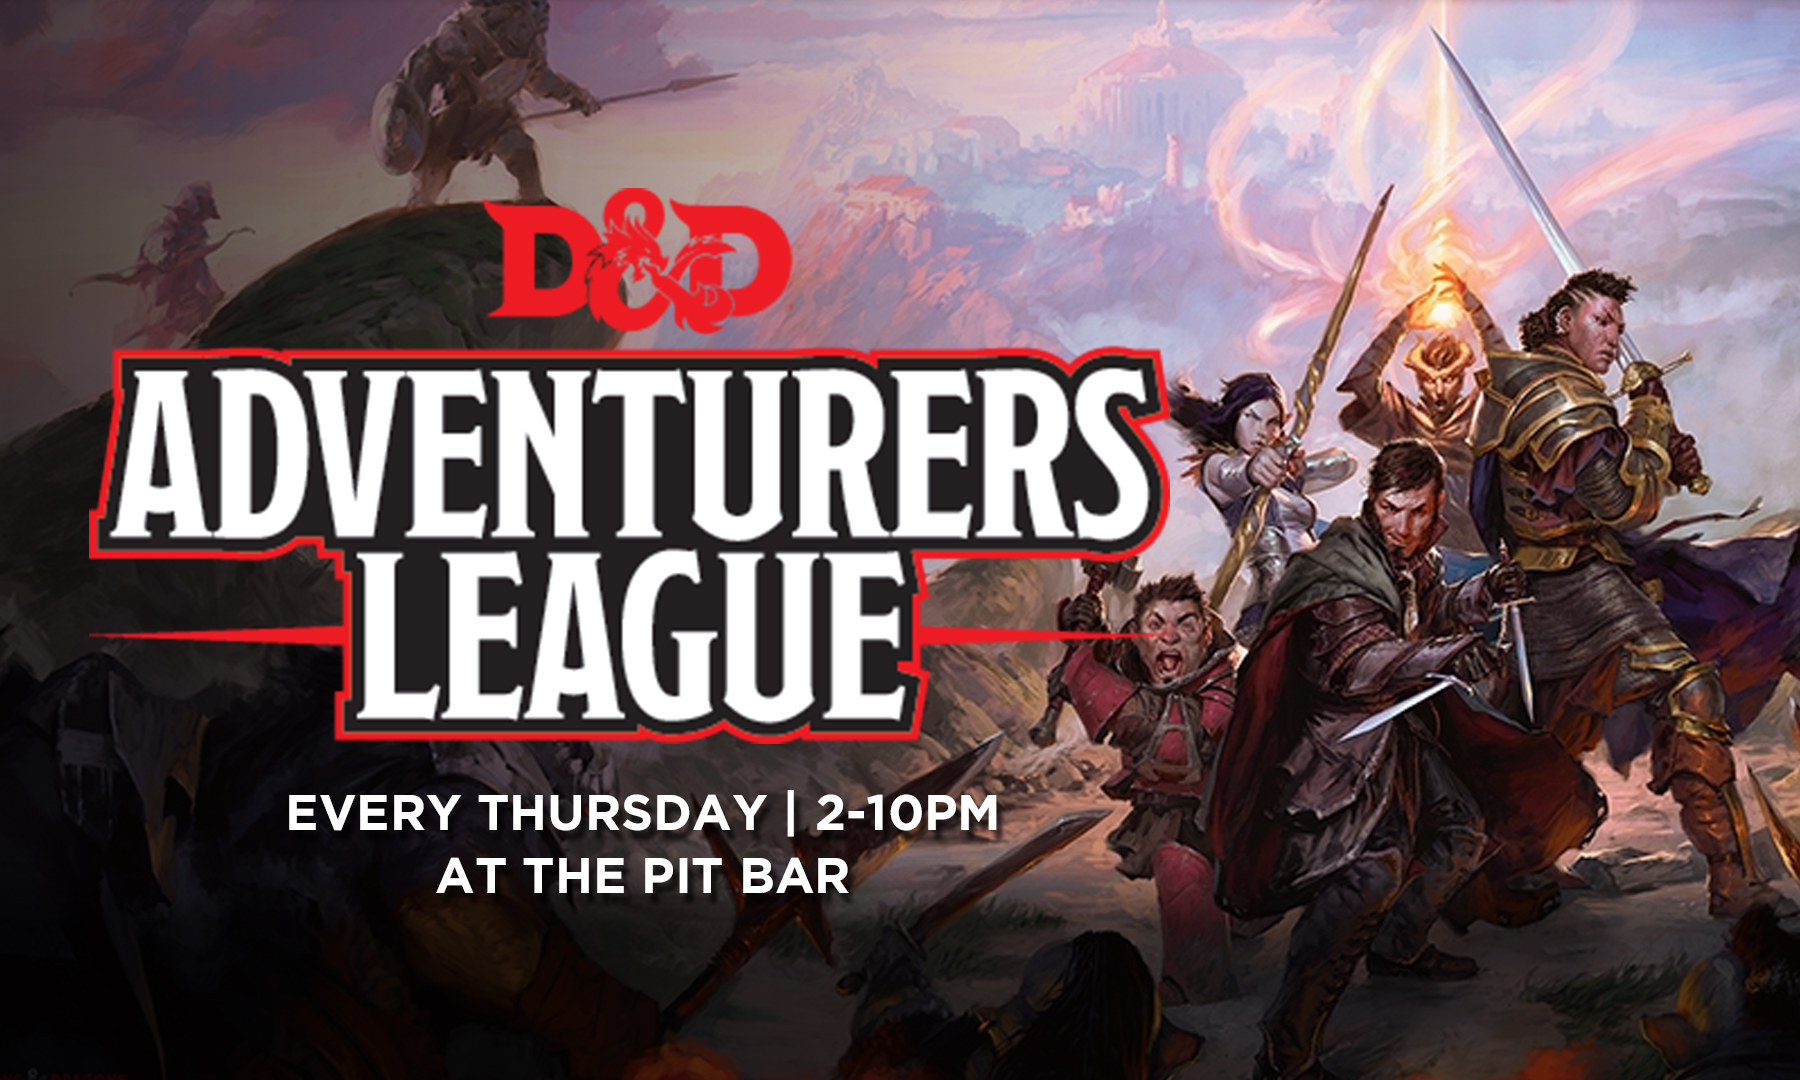 d&d at the pitbar every wednesday